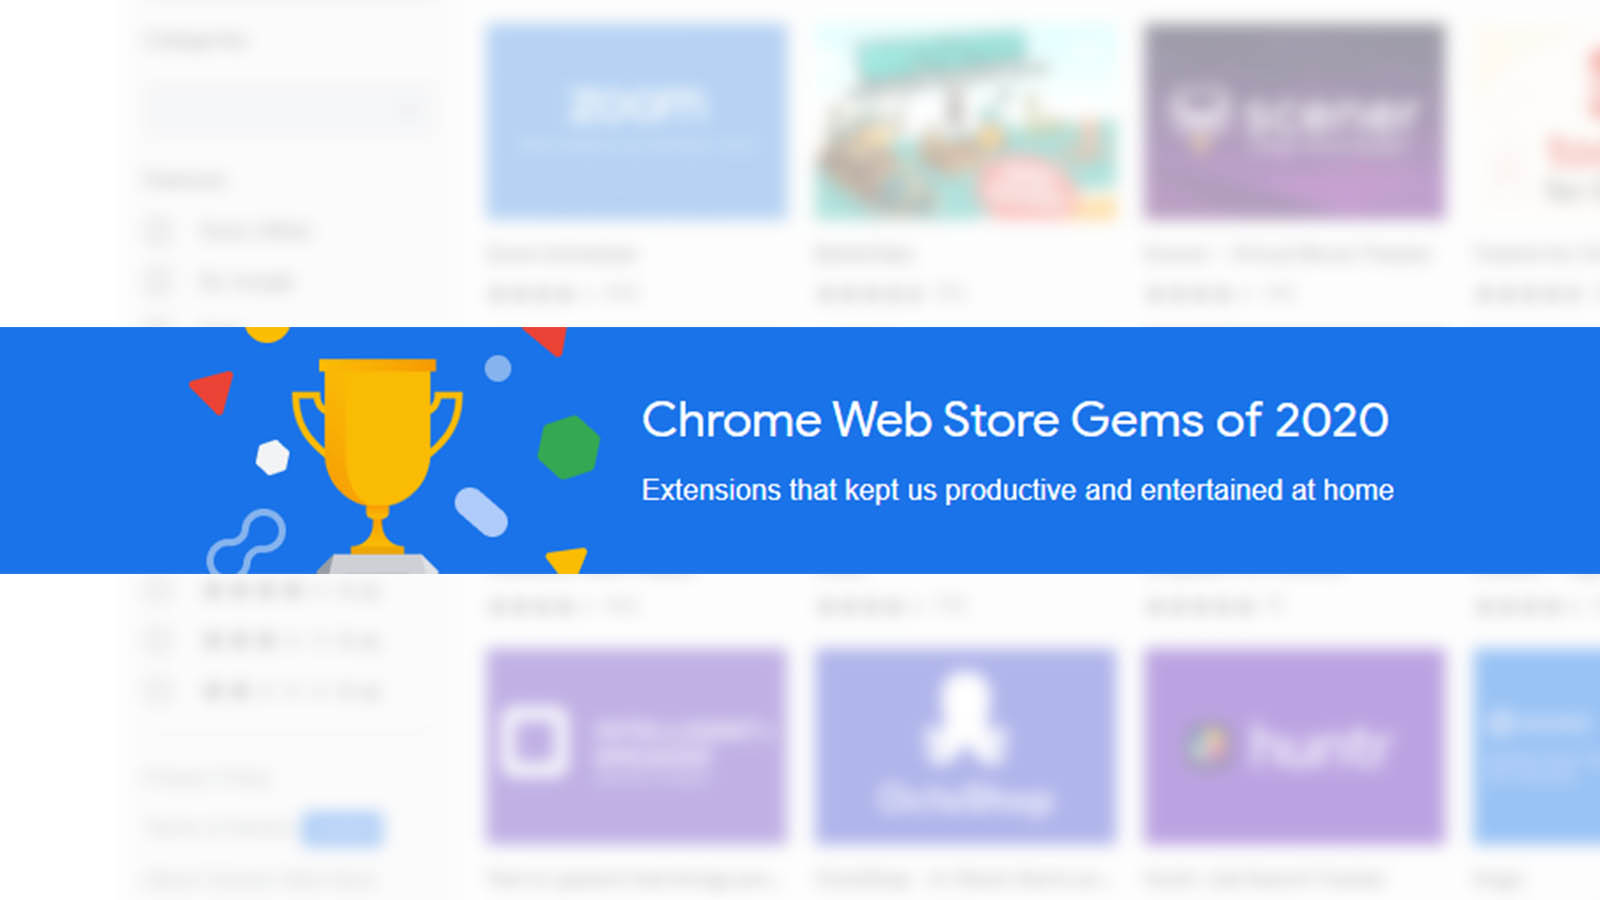 Check out these Chrome Web Store Gems to stay productive and entertained at home